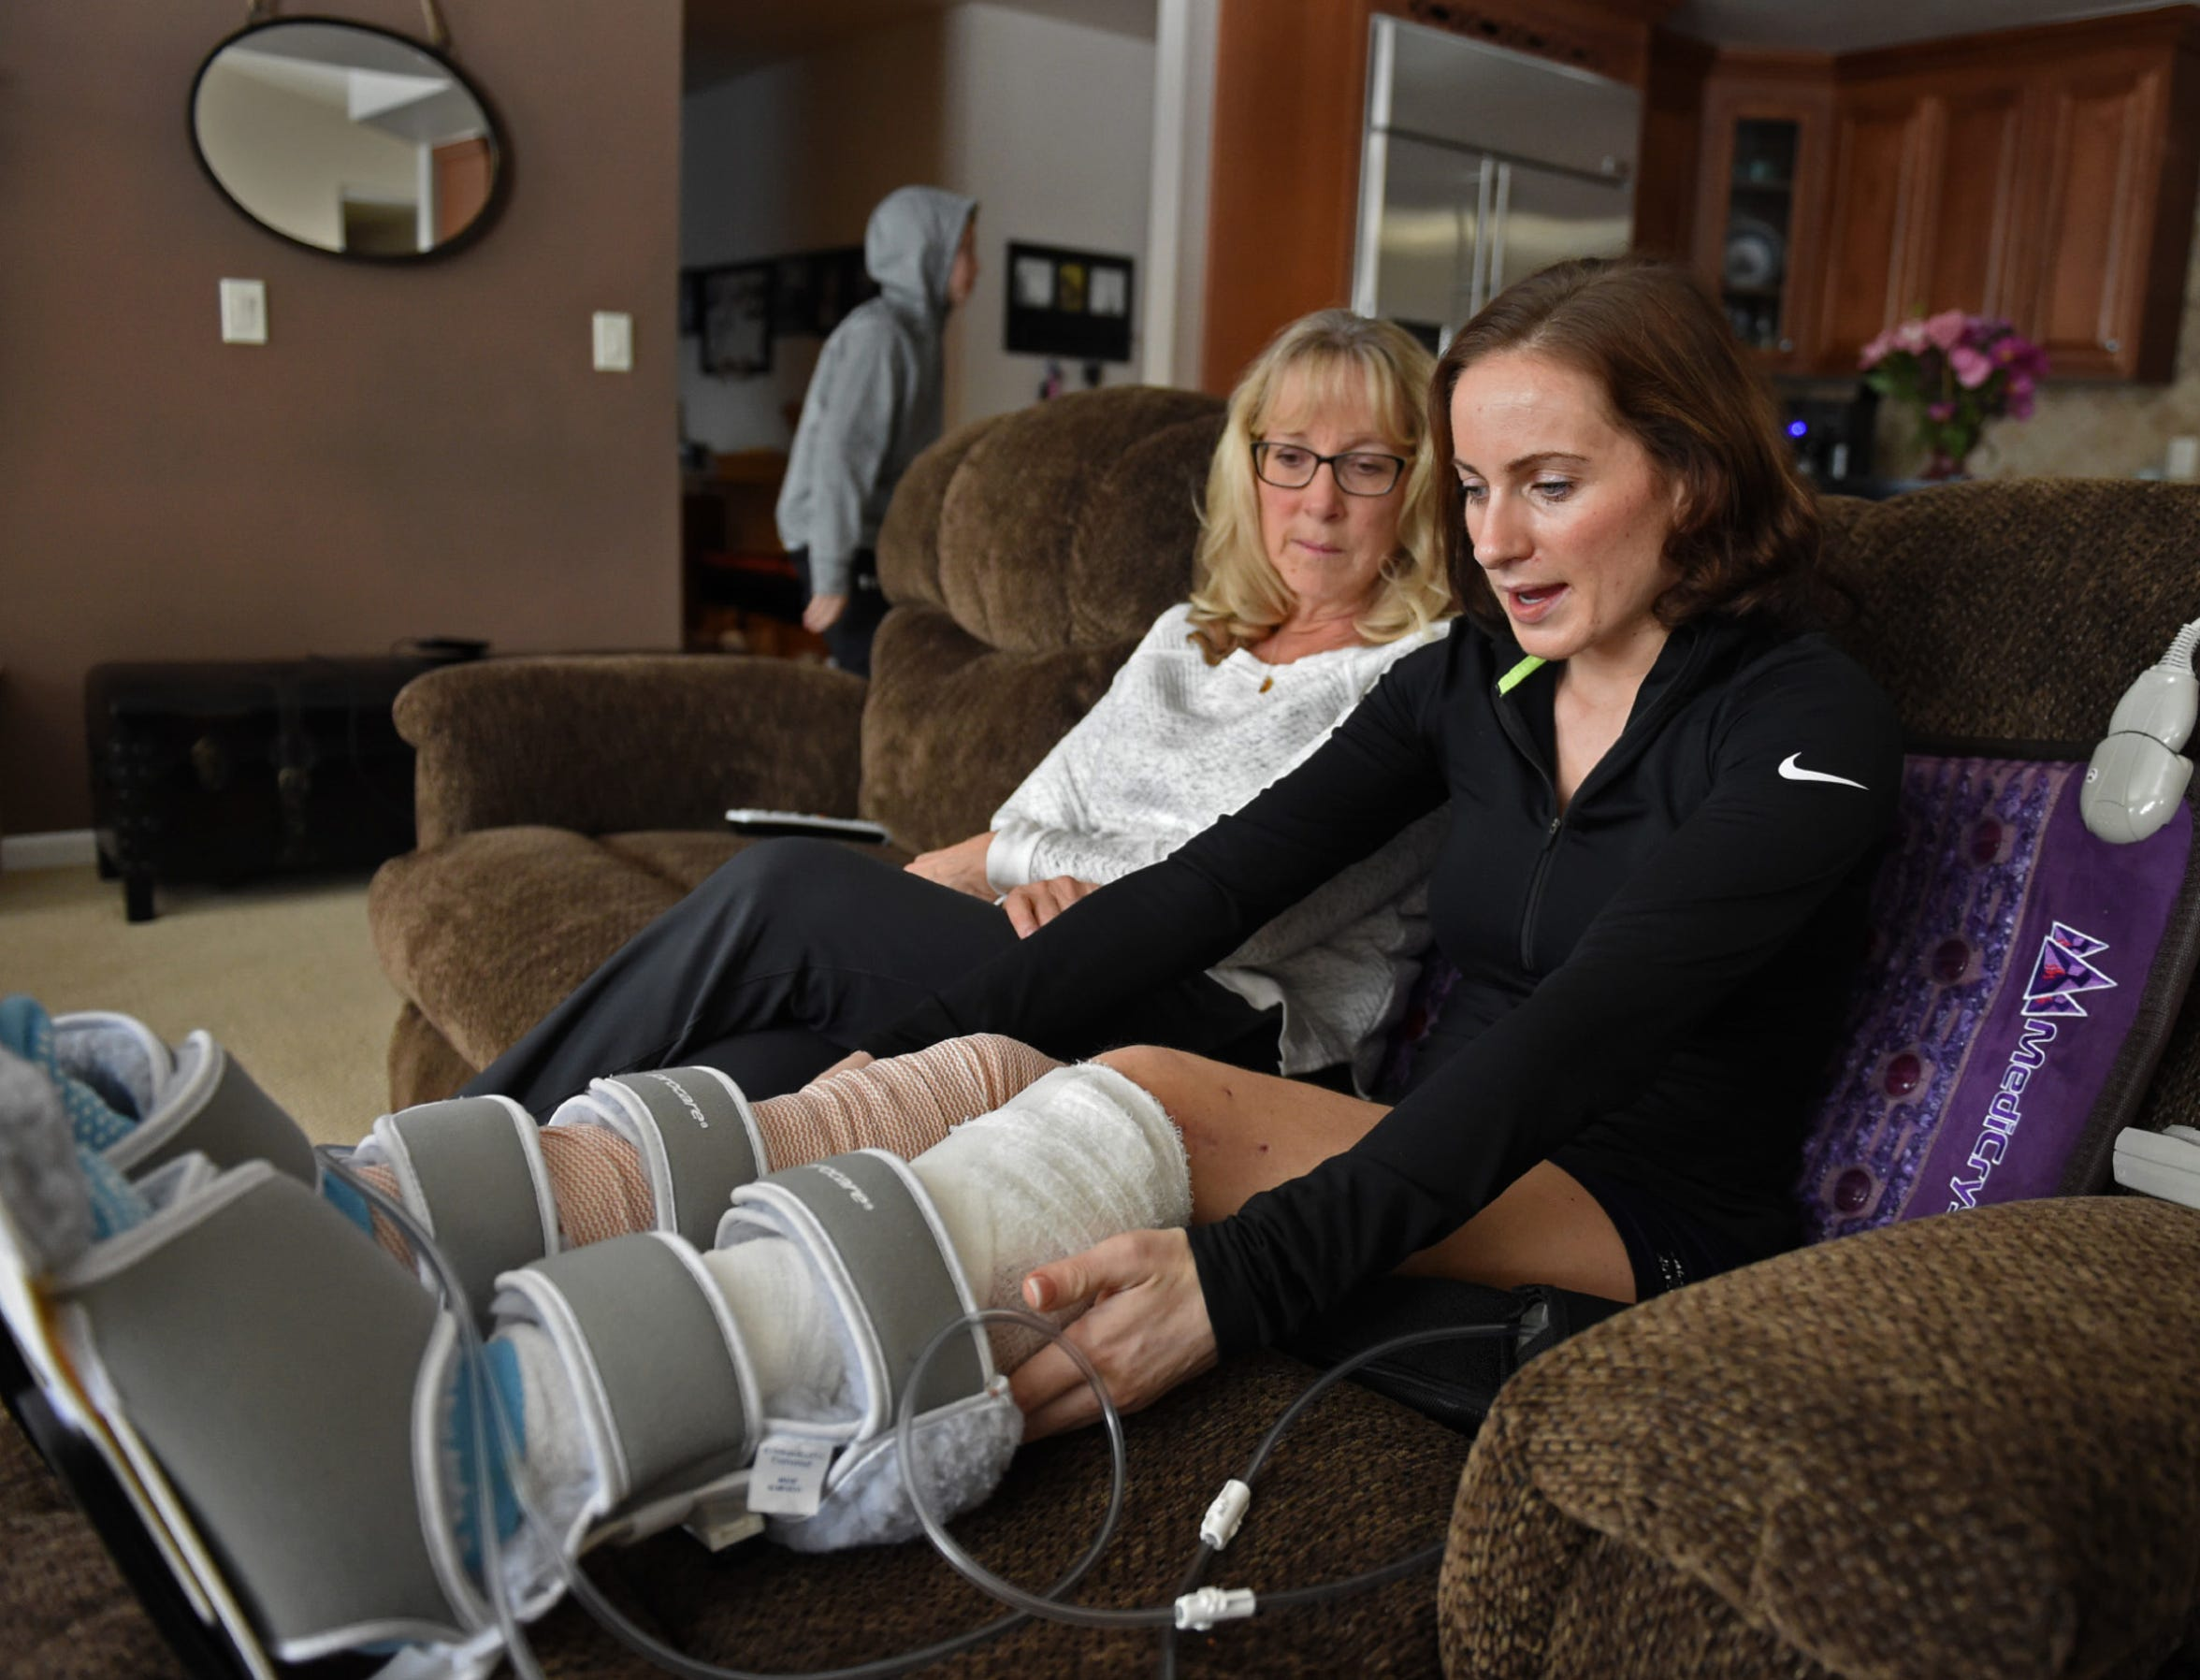 Kelly Cass, right, talks about the accident, her recovery and outlook as she sits next to her mother Cristie in ther mother's Reno home on Feb. 18, 2019. Cass is recovering after being hit by a drunk driver as she rode her skateboard near her Sacramento apartment in December.